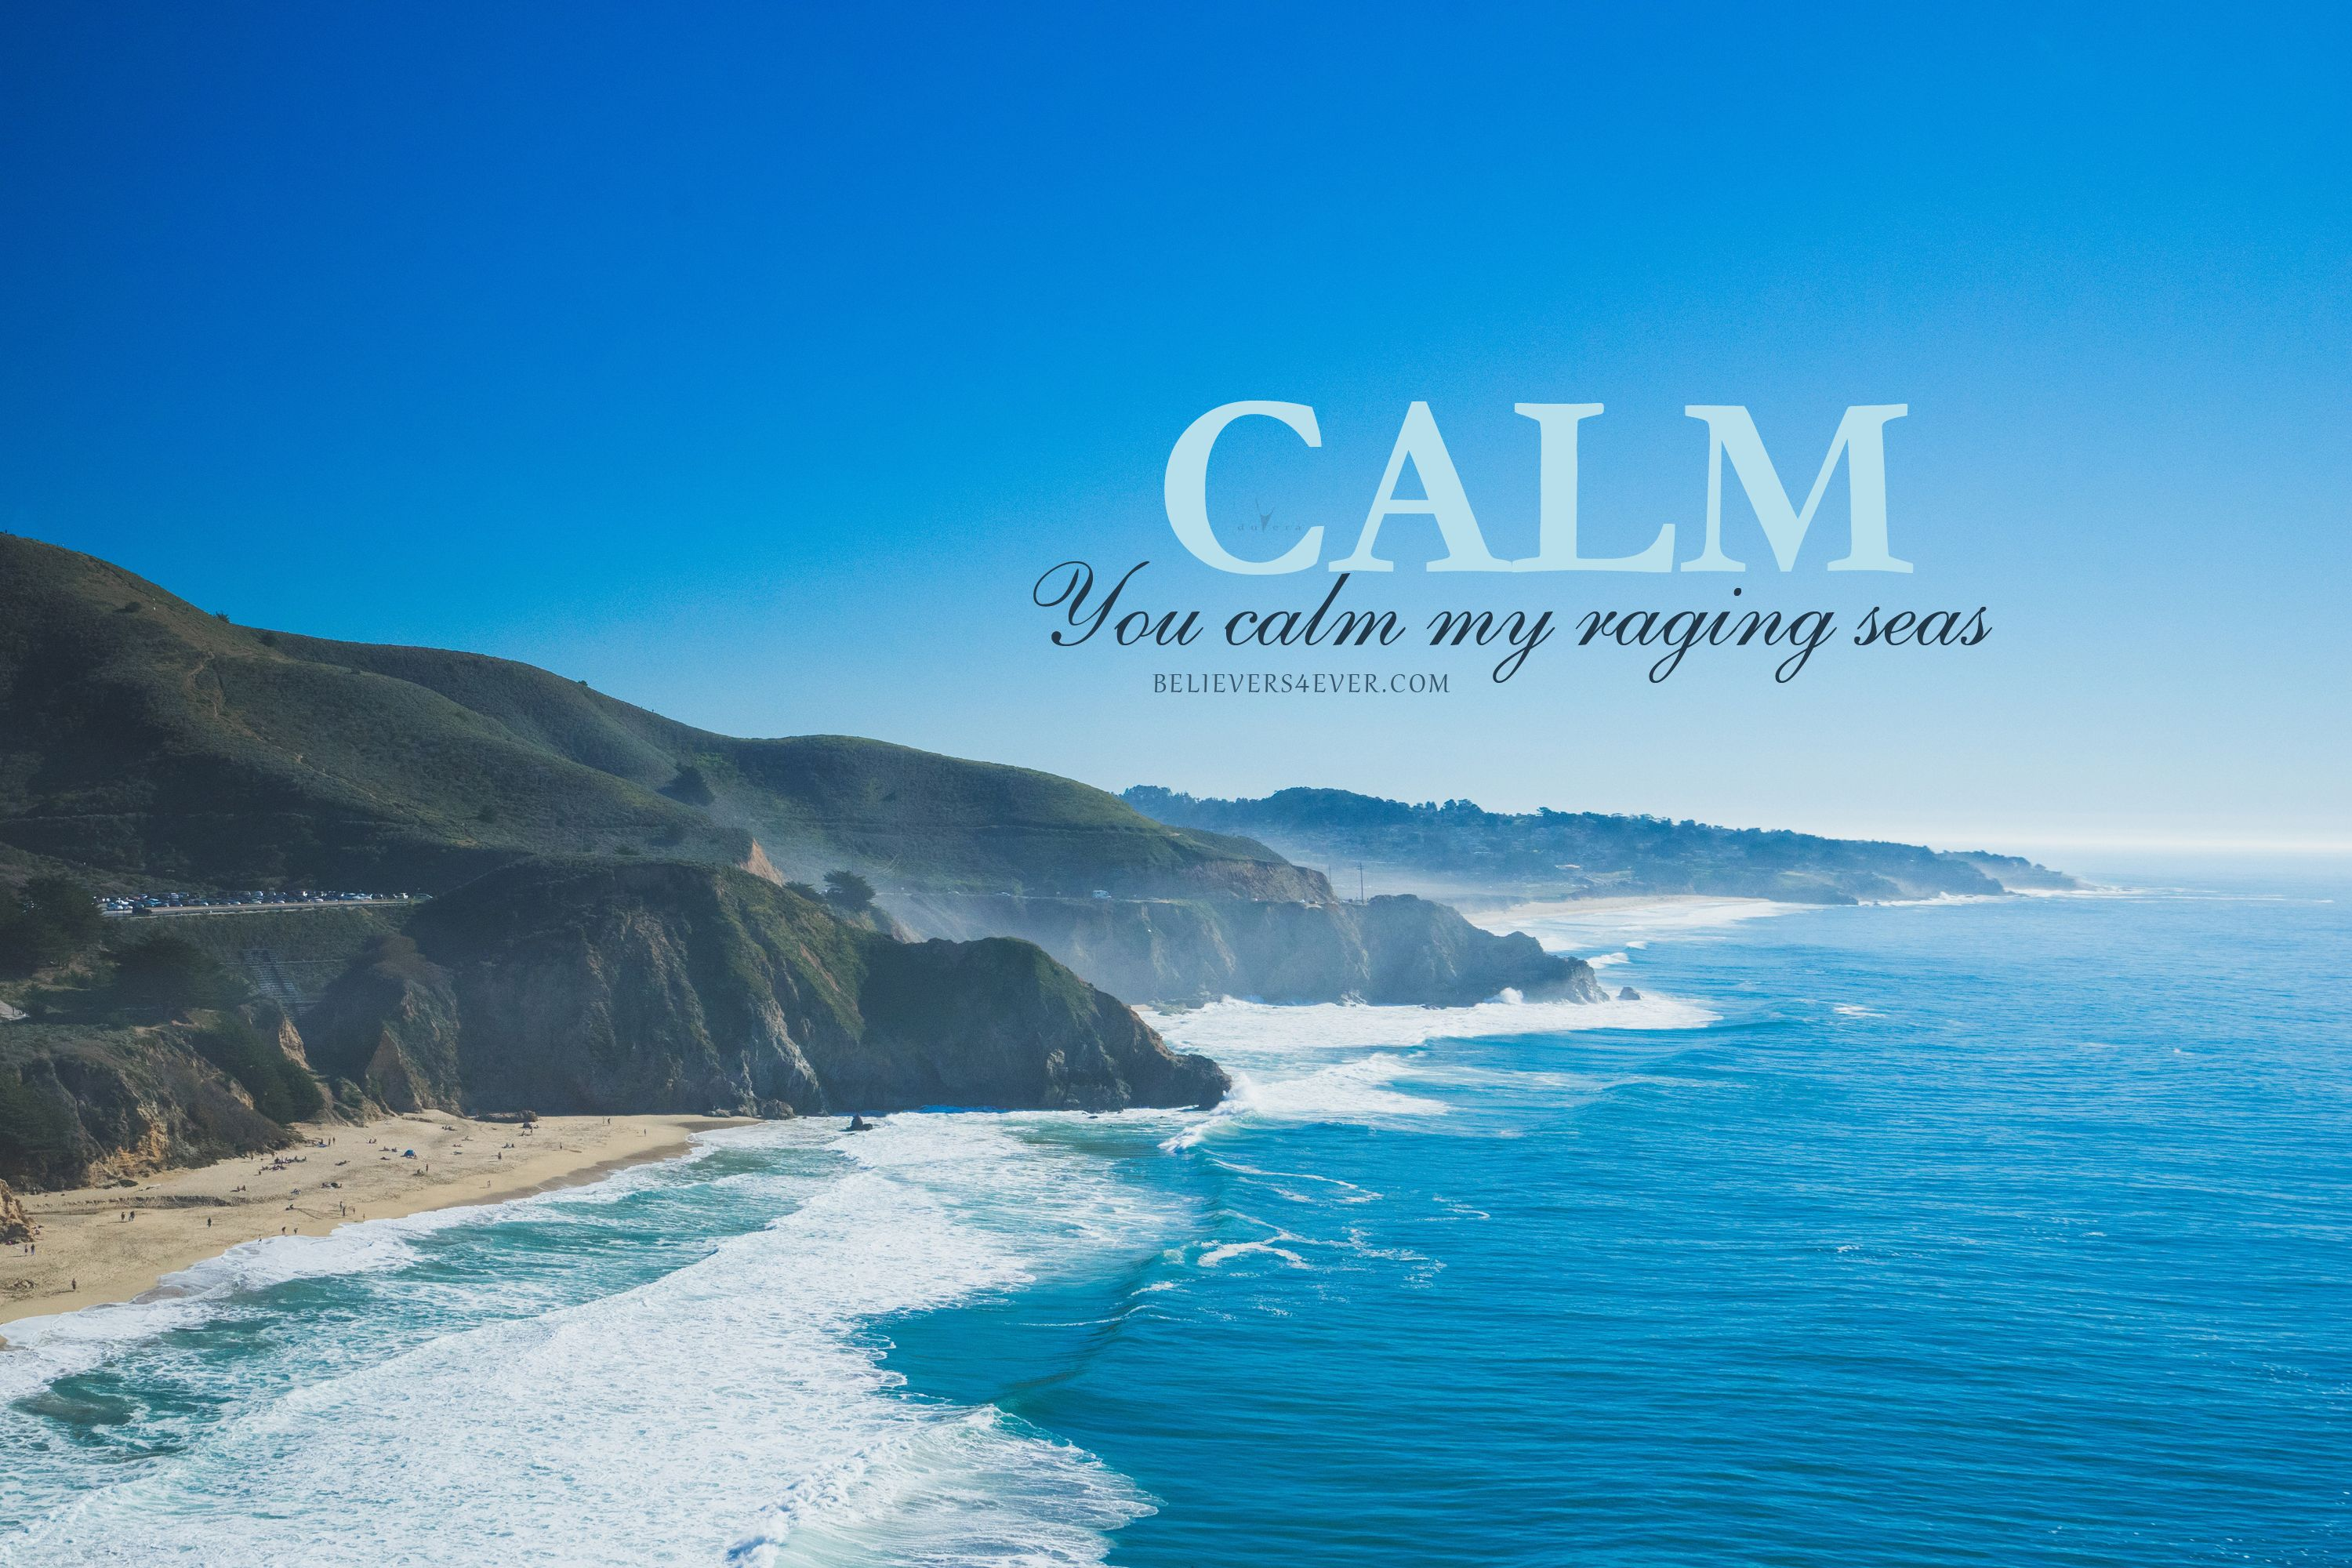 You calm my raging seas Christian wallpaper, Free